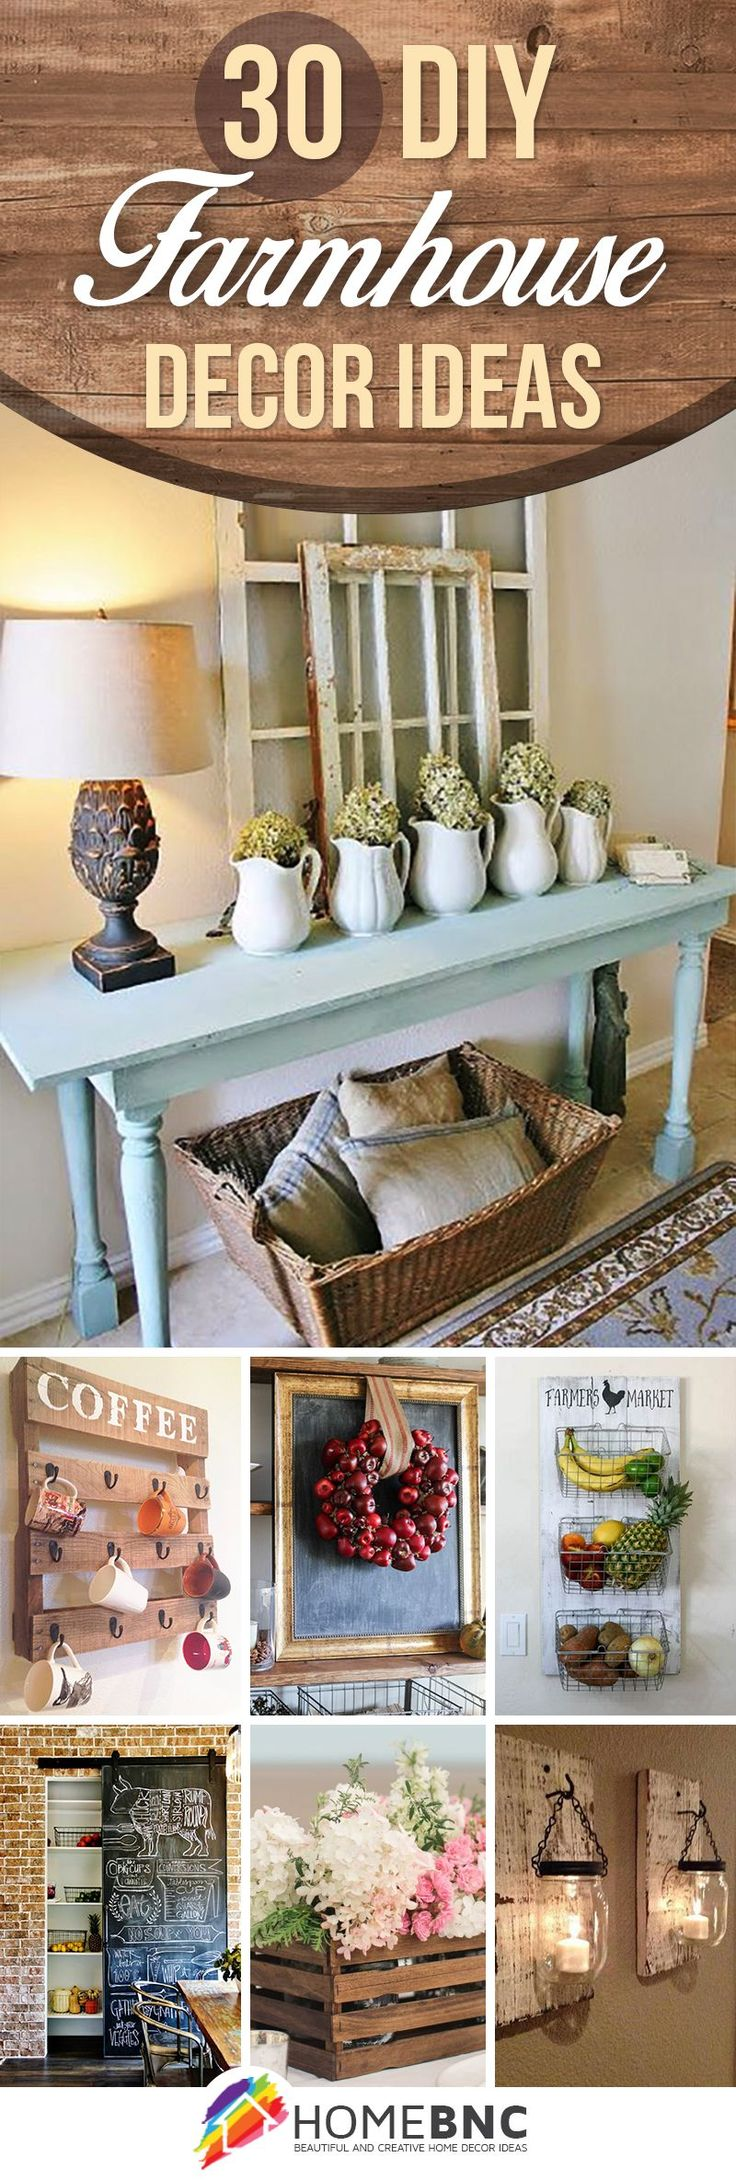 DIY Farmhouse Decorations